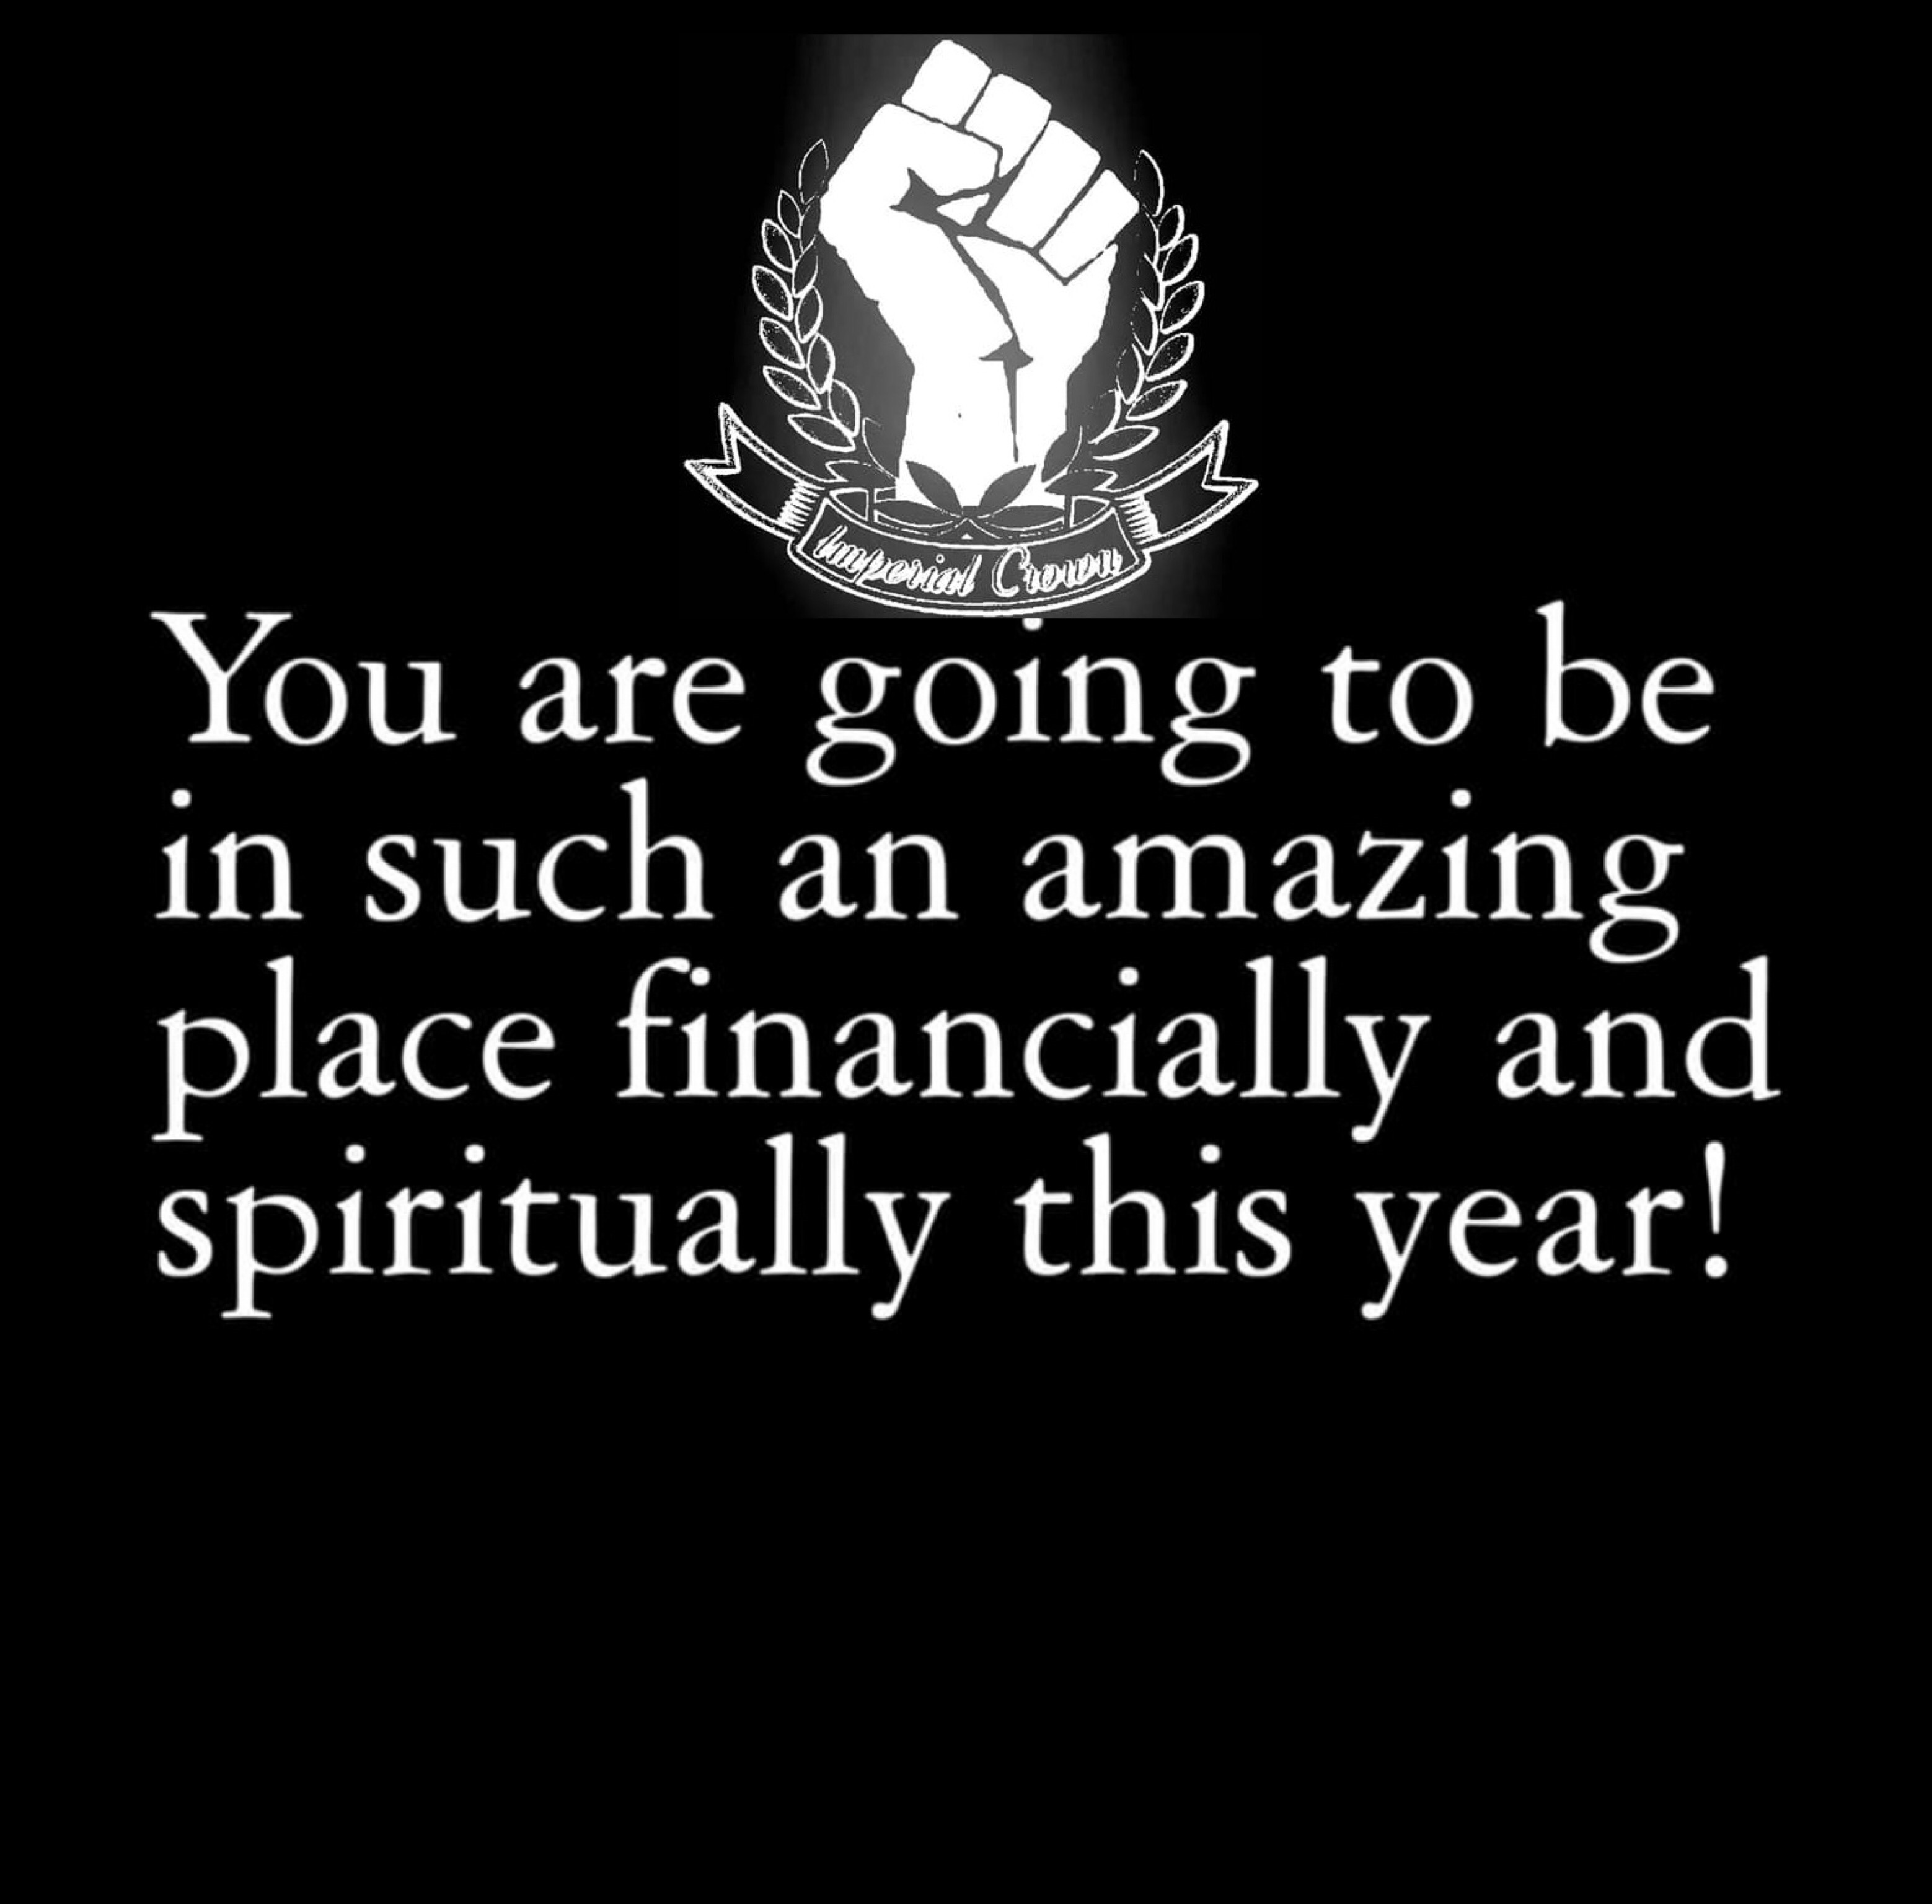 You are going to be in such an amazing place financially and spiritually this year